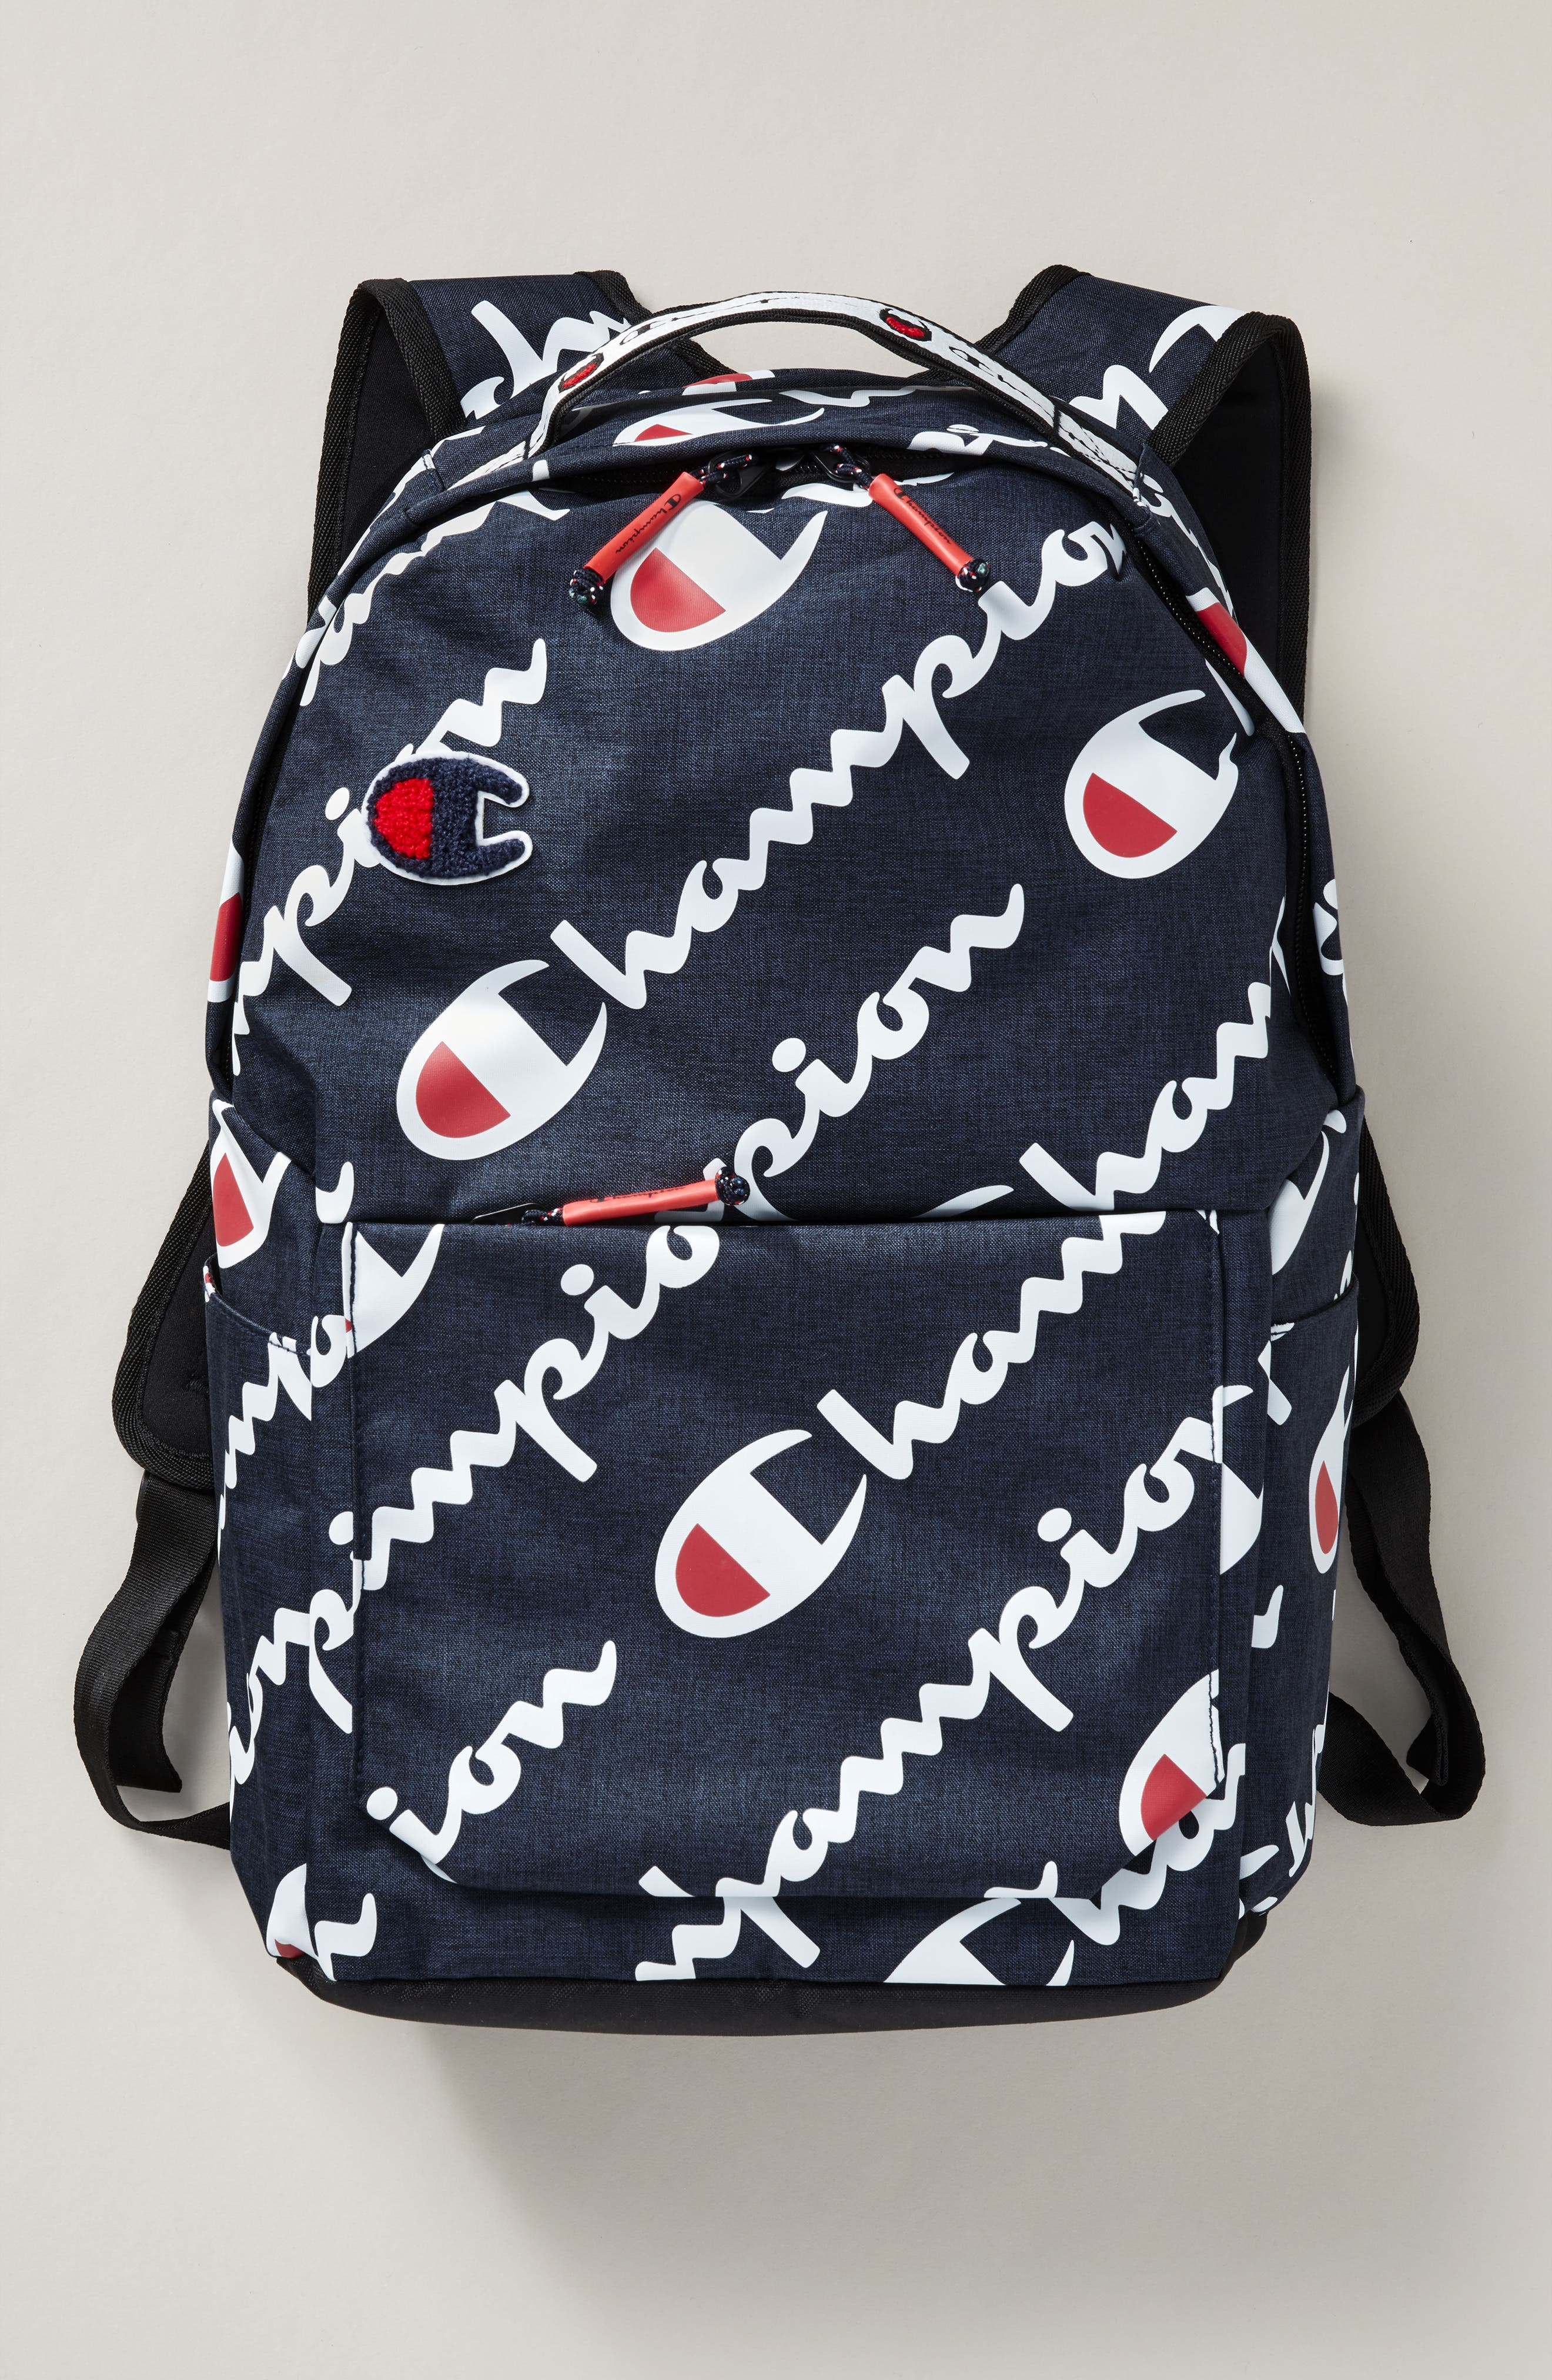 Advocate Logo Backpack,                             Alternate thumbnail 2, color,                             NAVY HEATHER